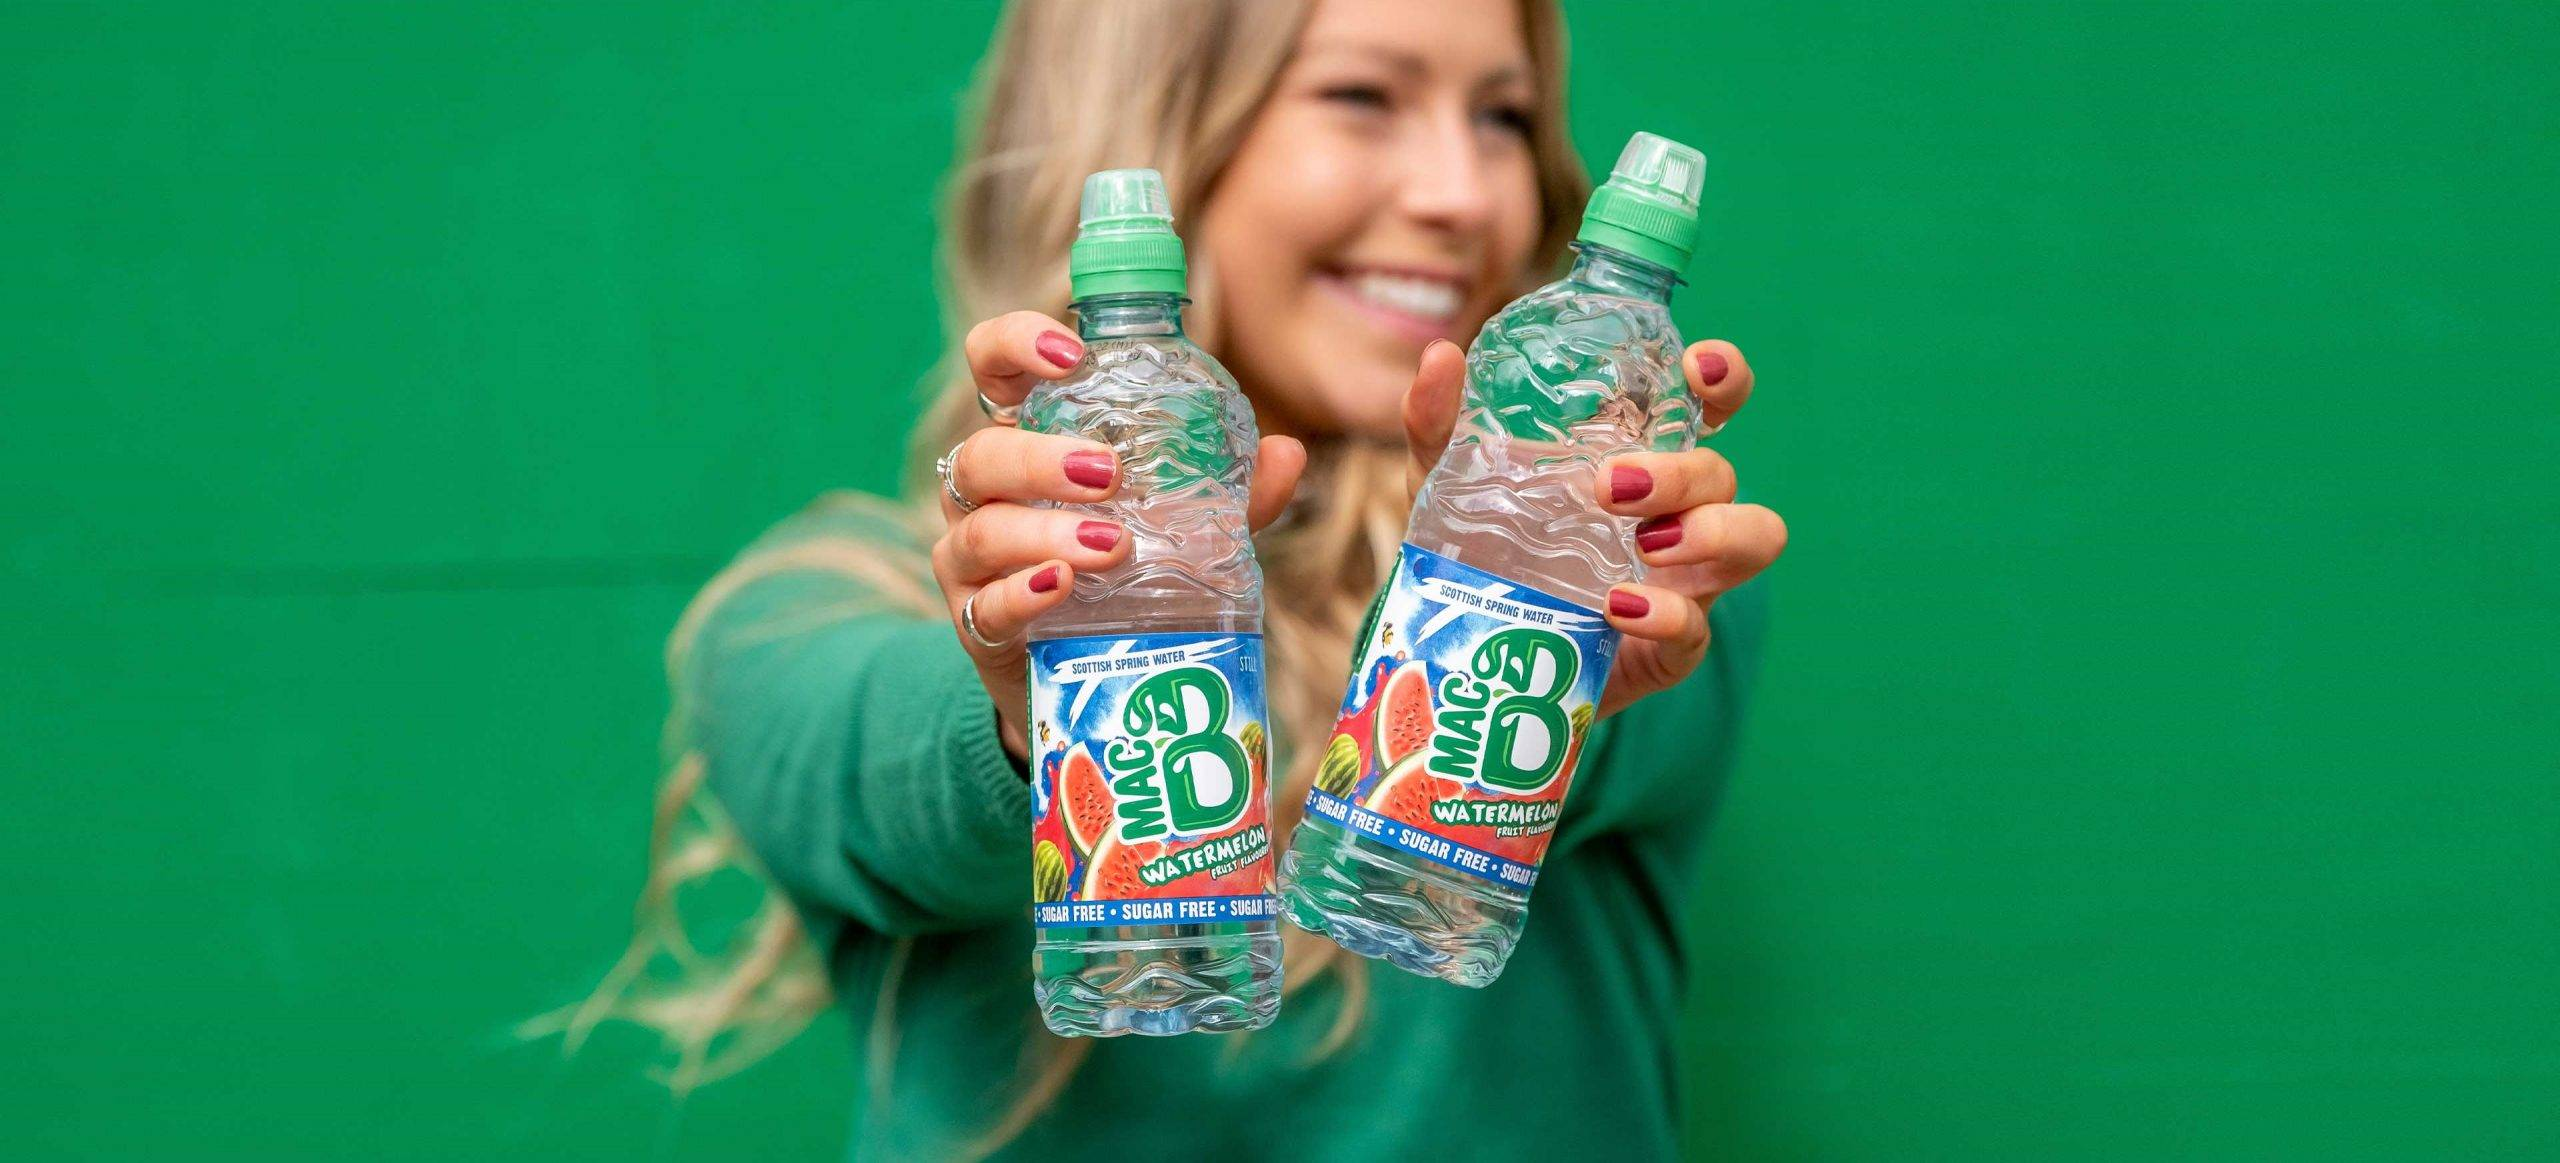 A woman holding two bottles of Macb Watermelon flavoured spring water